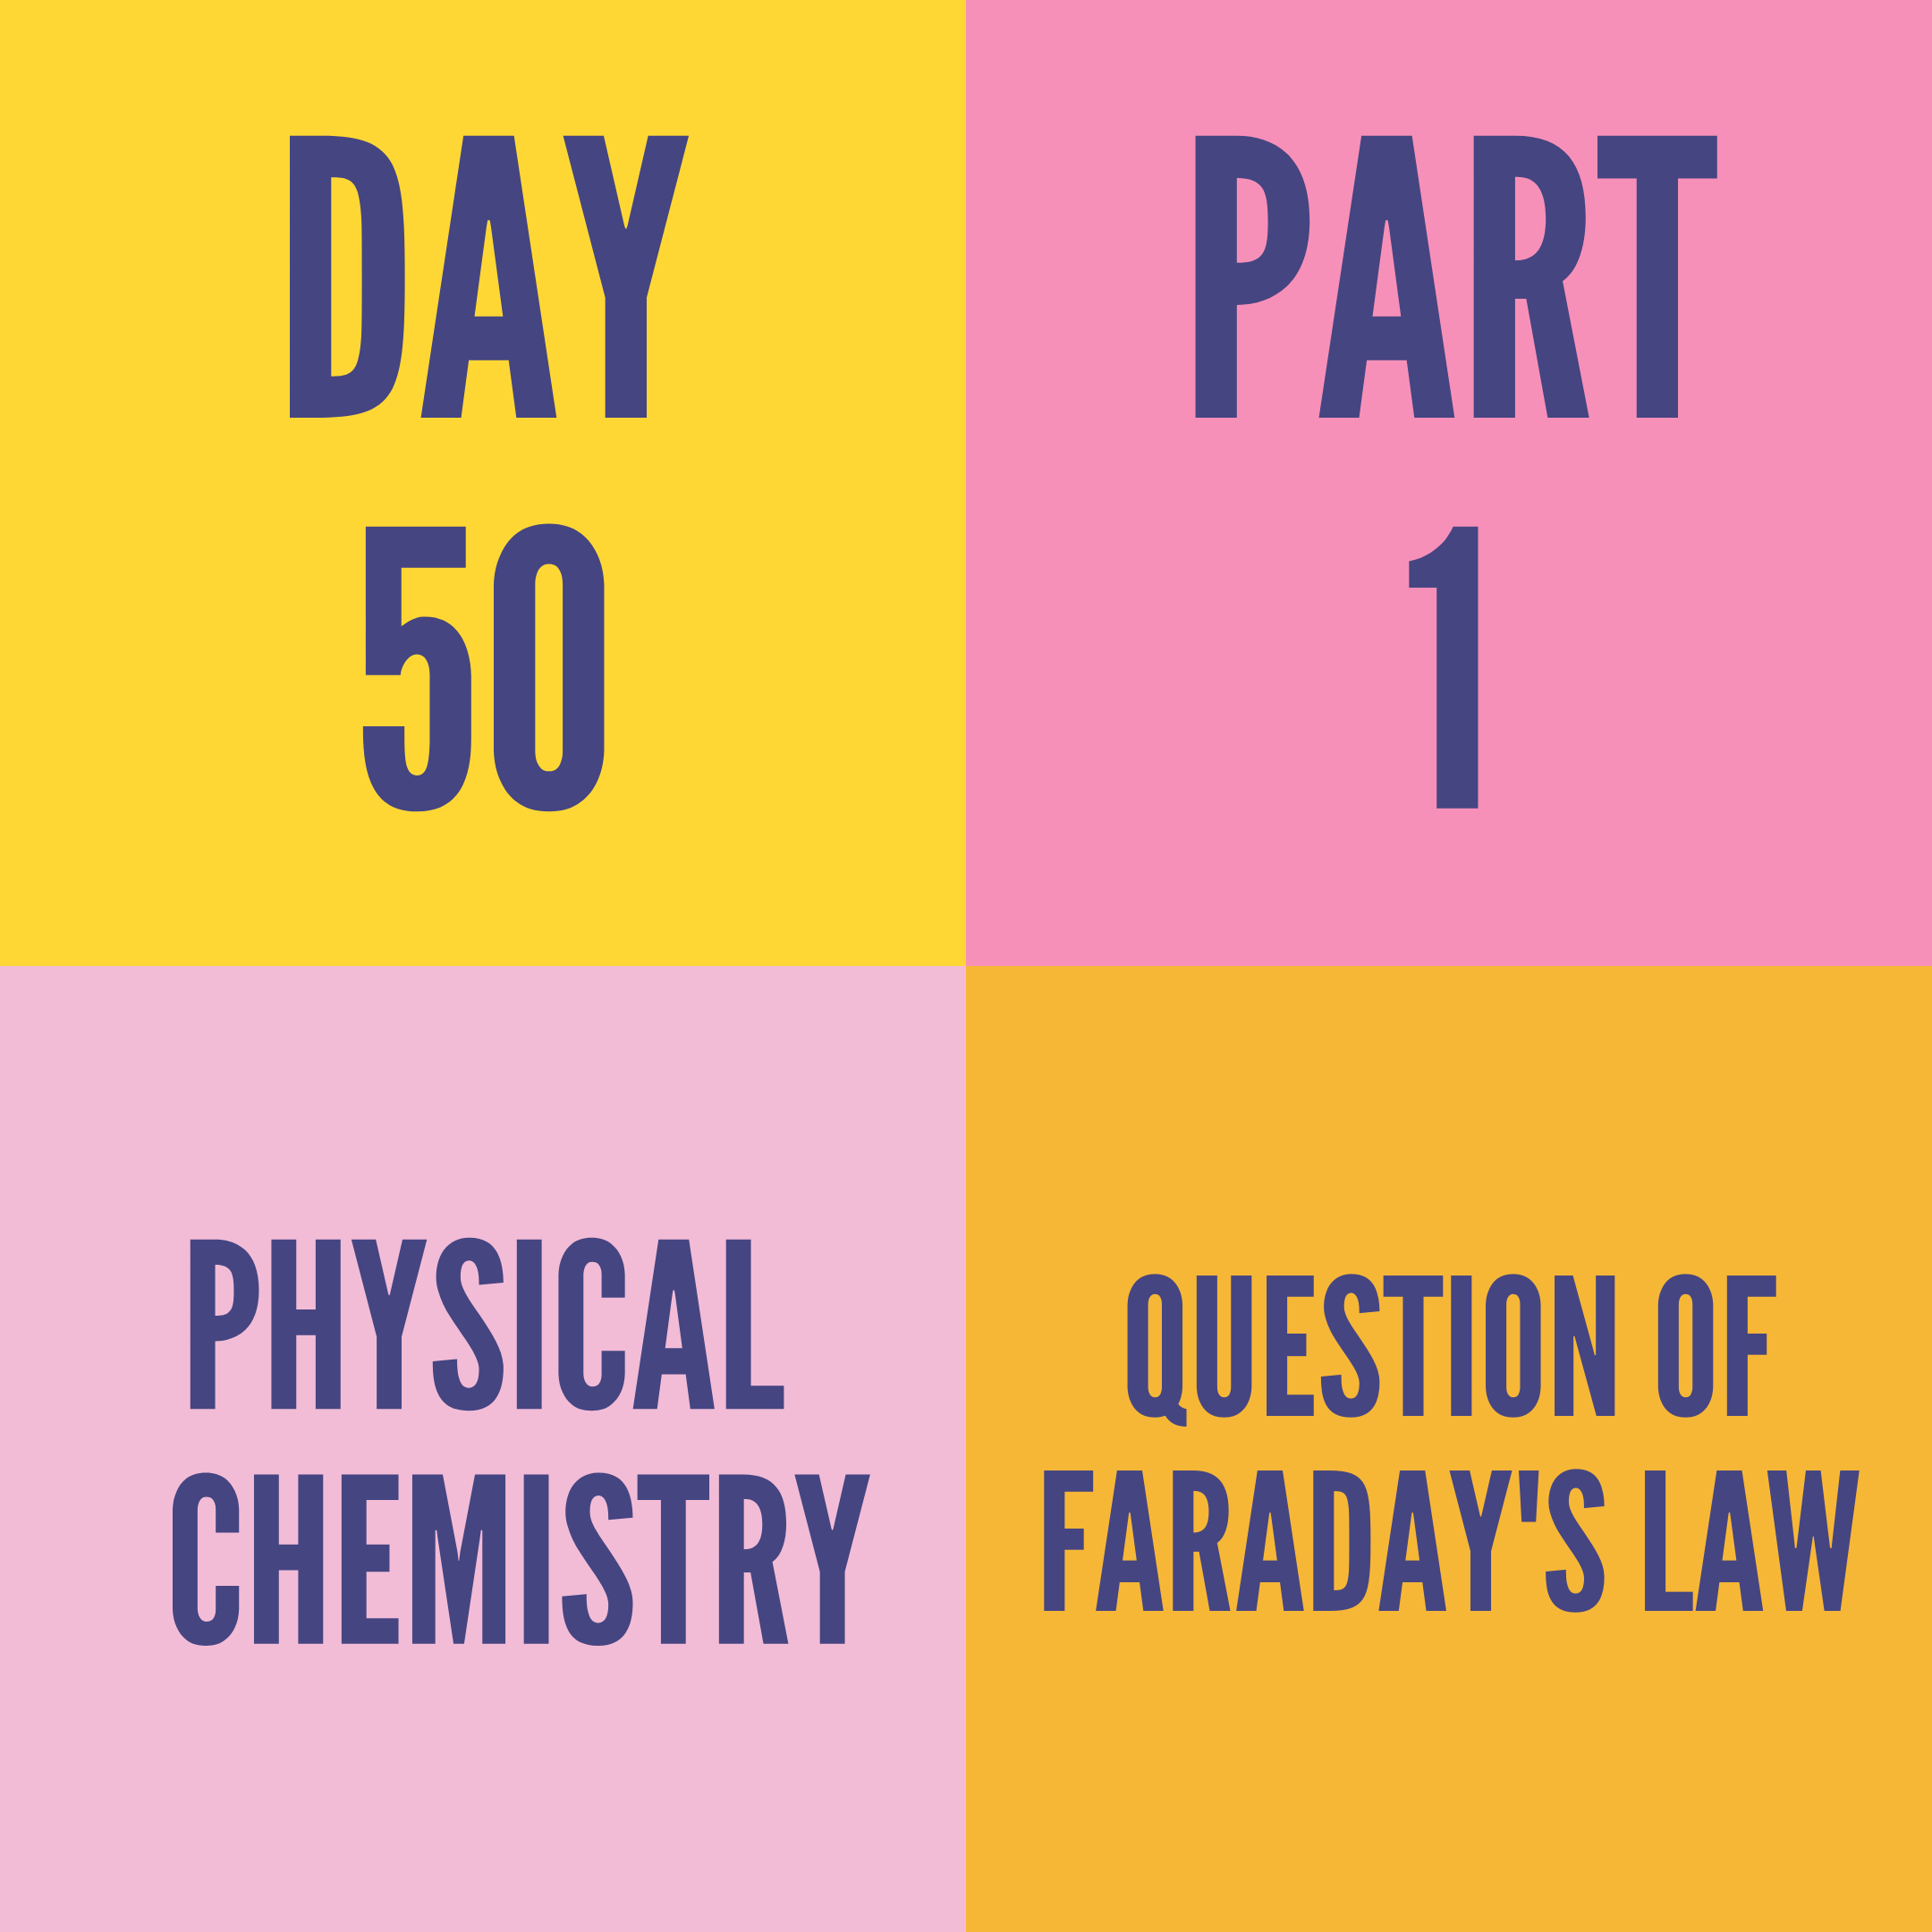 DAY-50 PART-1 QUESTION OF FARADAY'S LAW